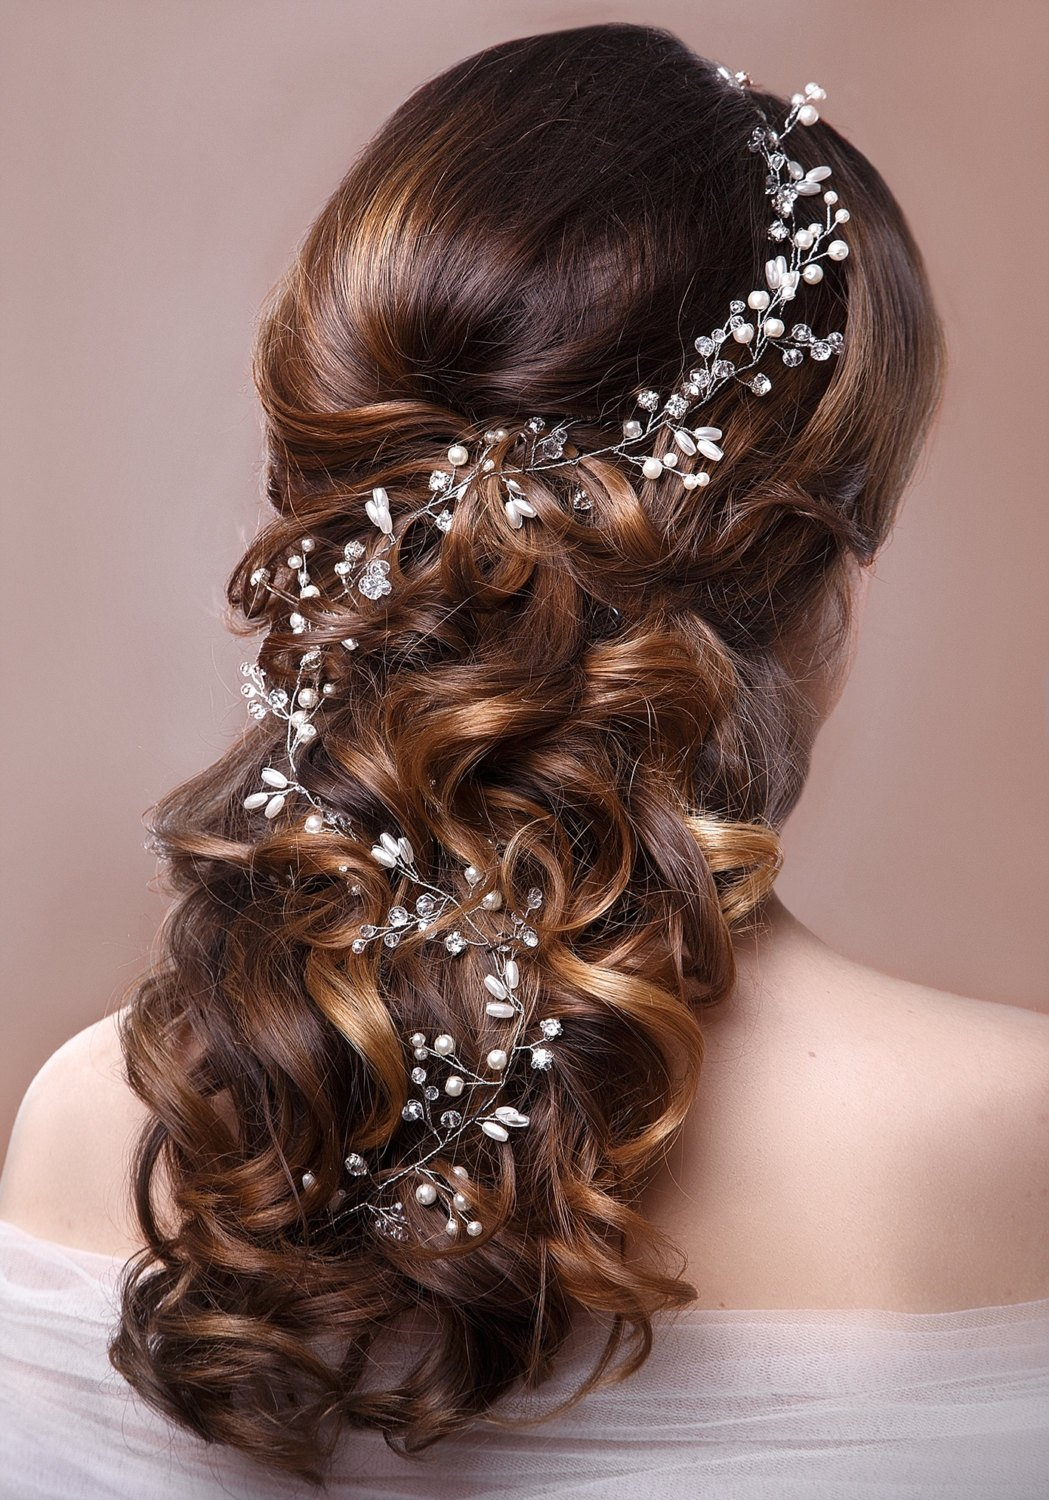 11 Bewitching Bridal Hairstyles Inspiration And Advice To Plan